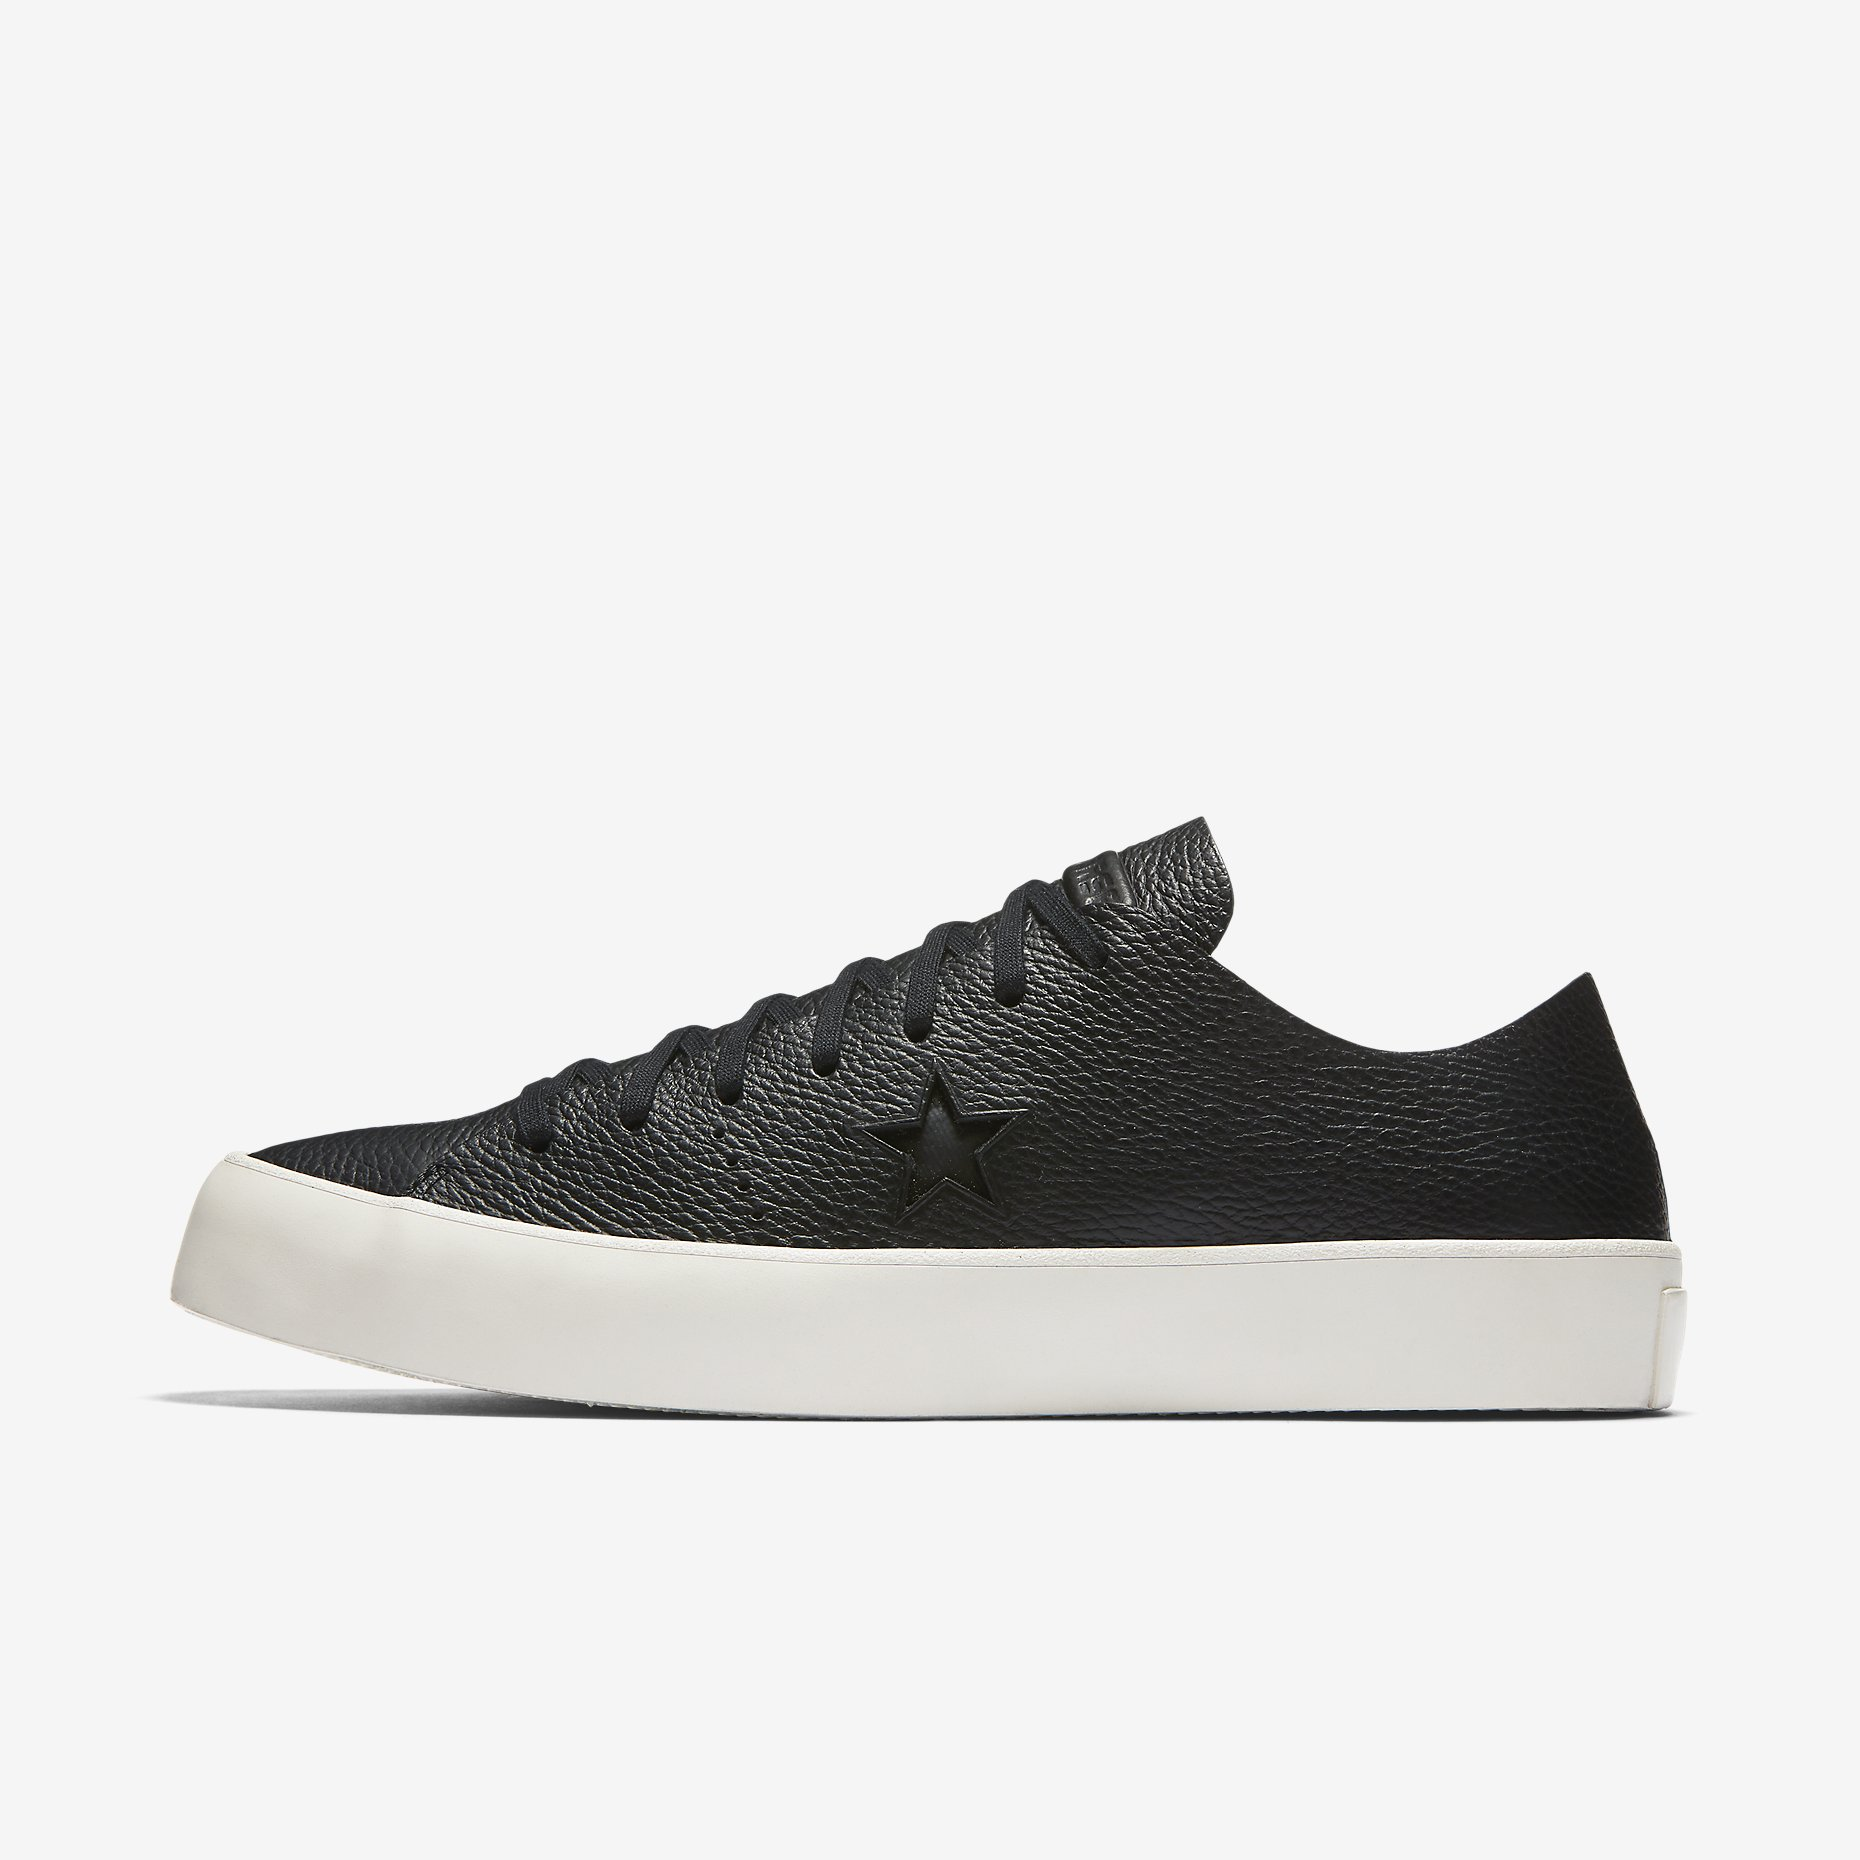 separation shoes 36d1d 38358 Very Goods | Converse One Star Prime Low Top Unisex Shoe. Nike.com